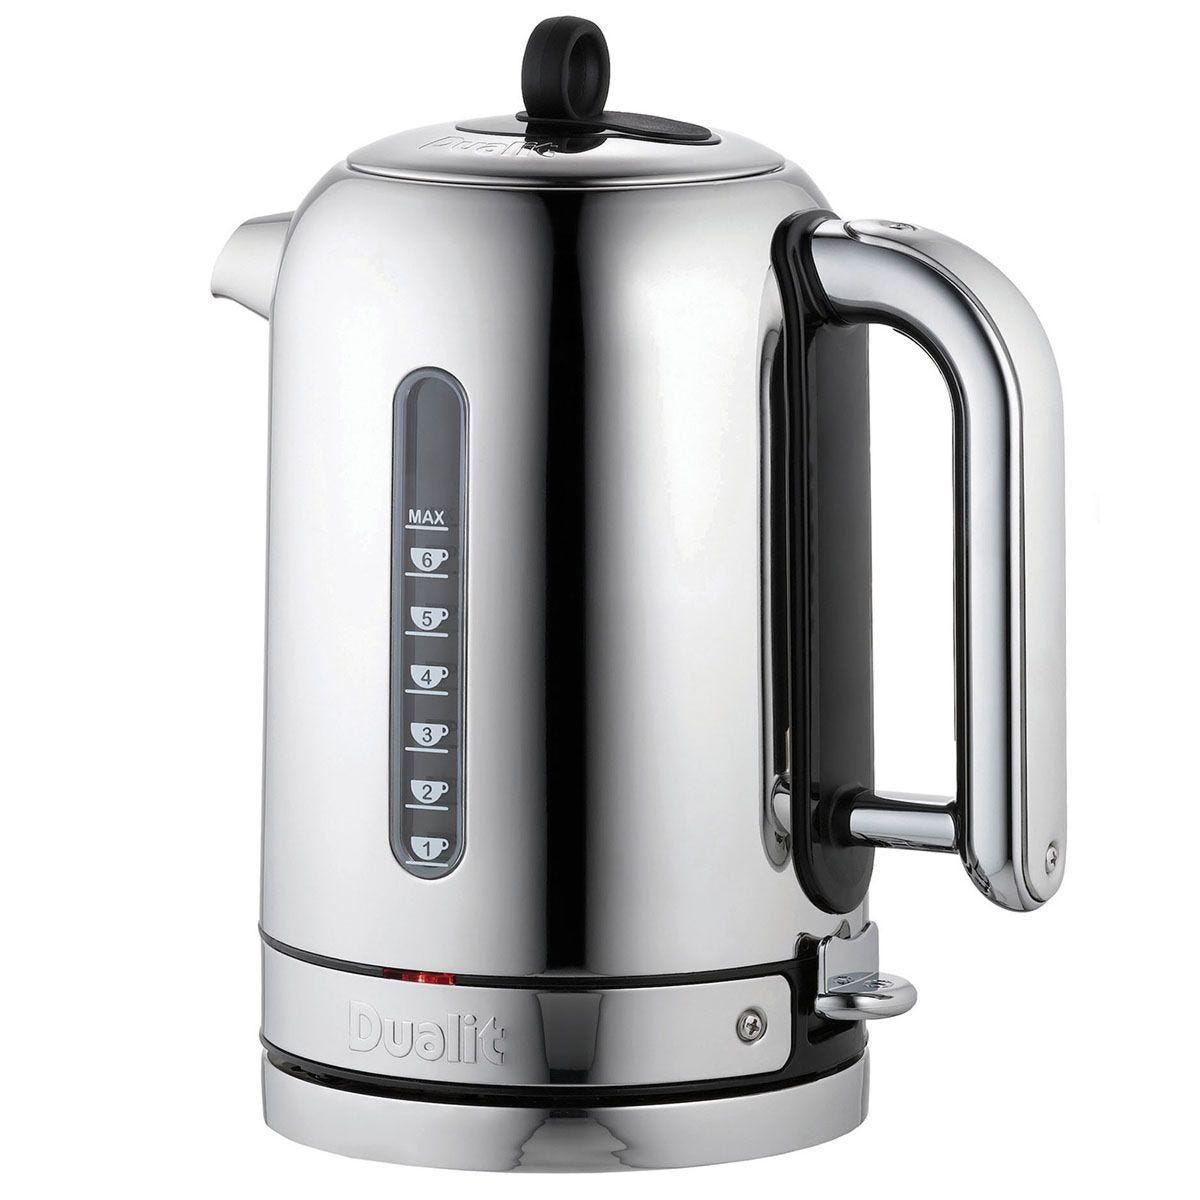 Dualit DA2815 Classic 1.7L 3kW Whisper Boil Kettle - Polished Stainless Steel